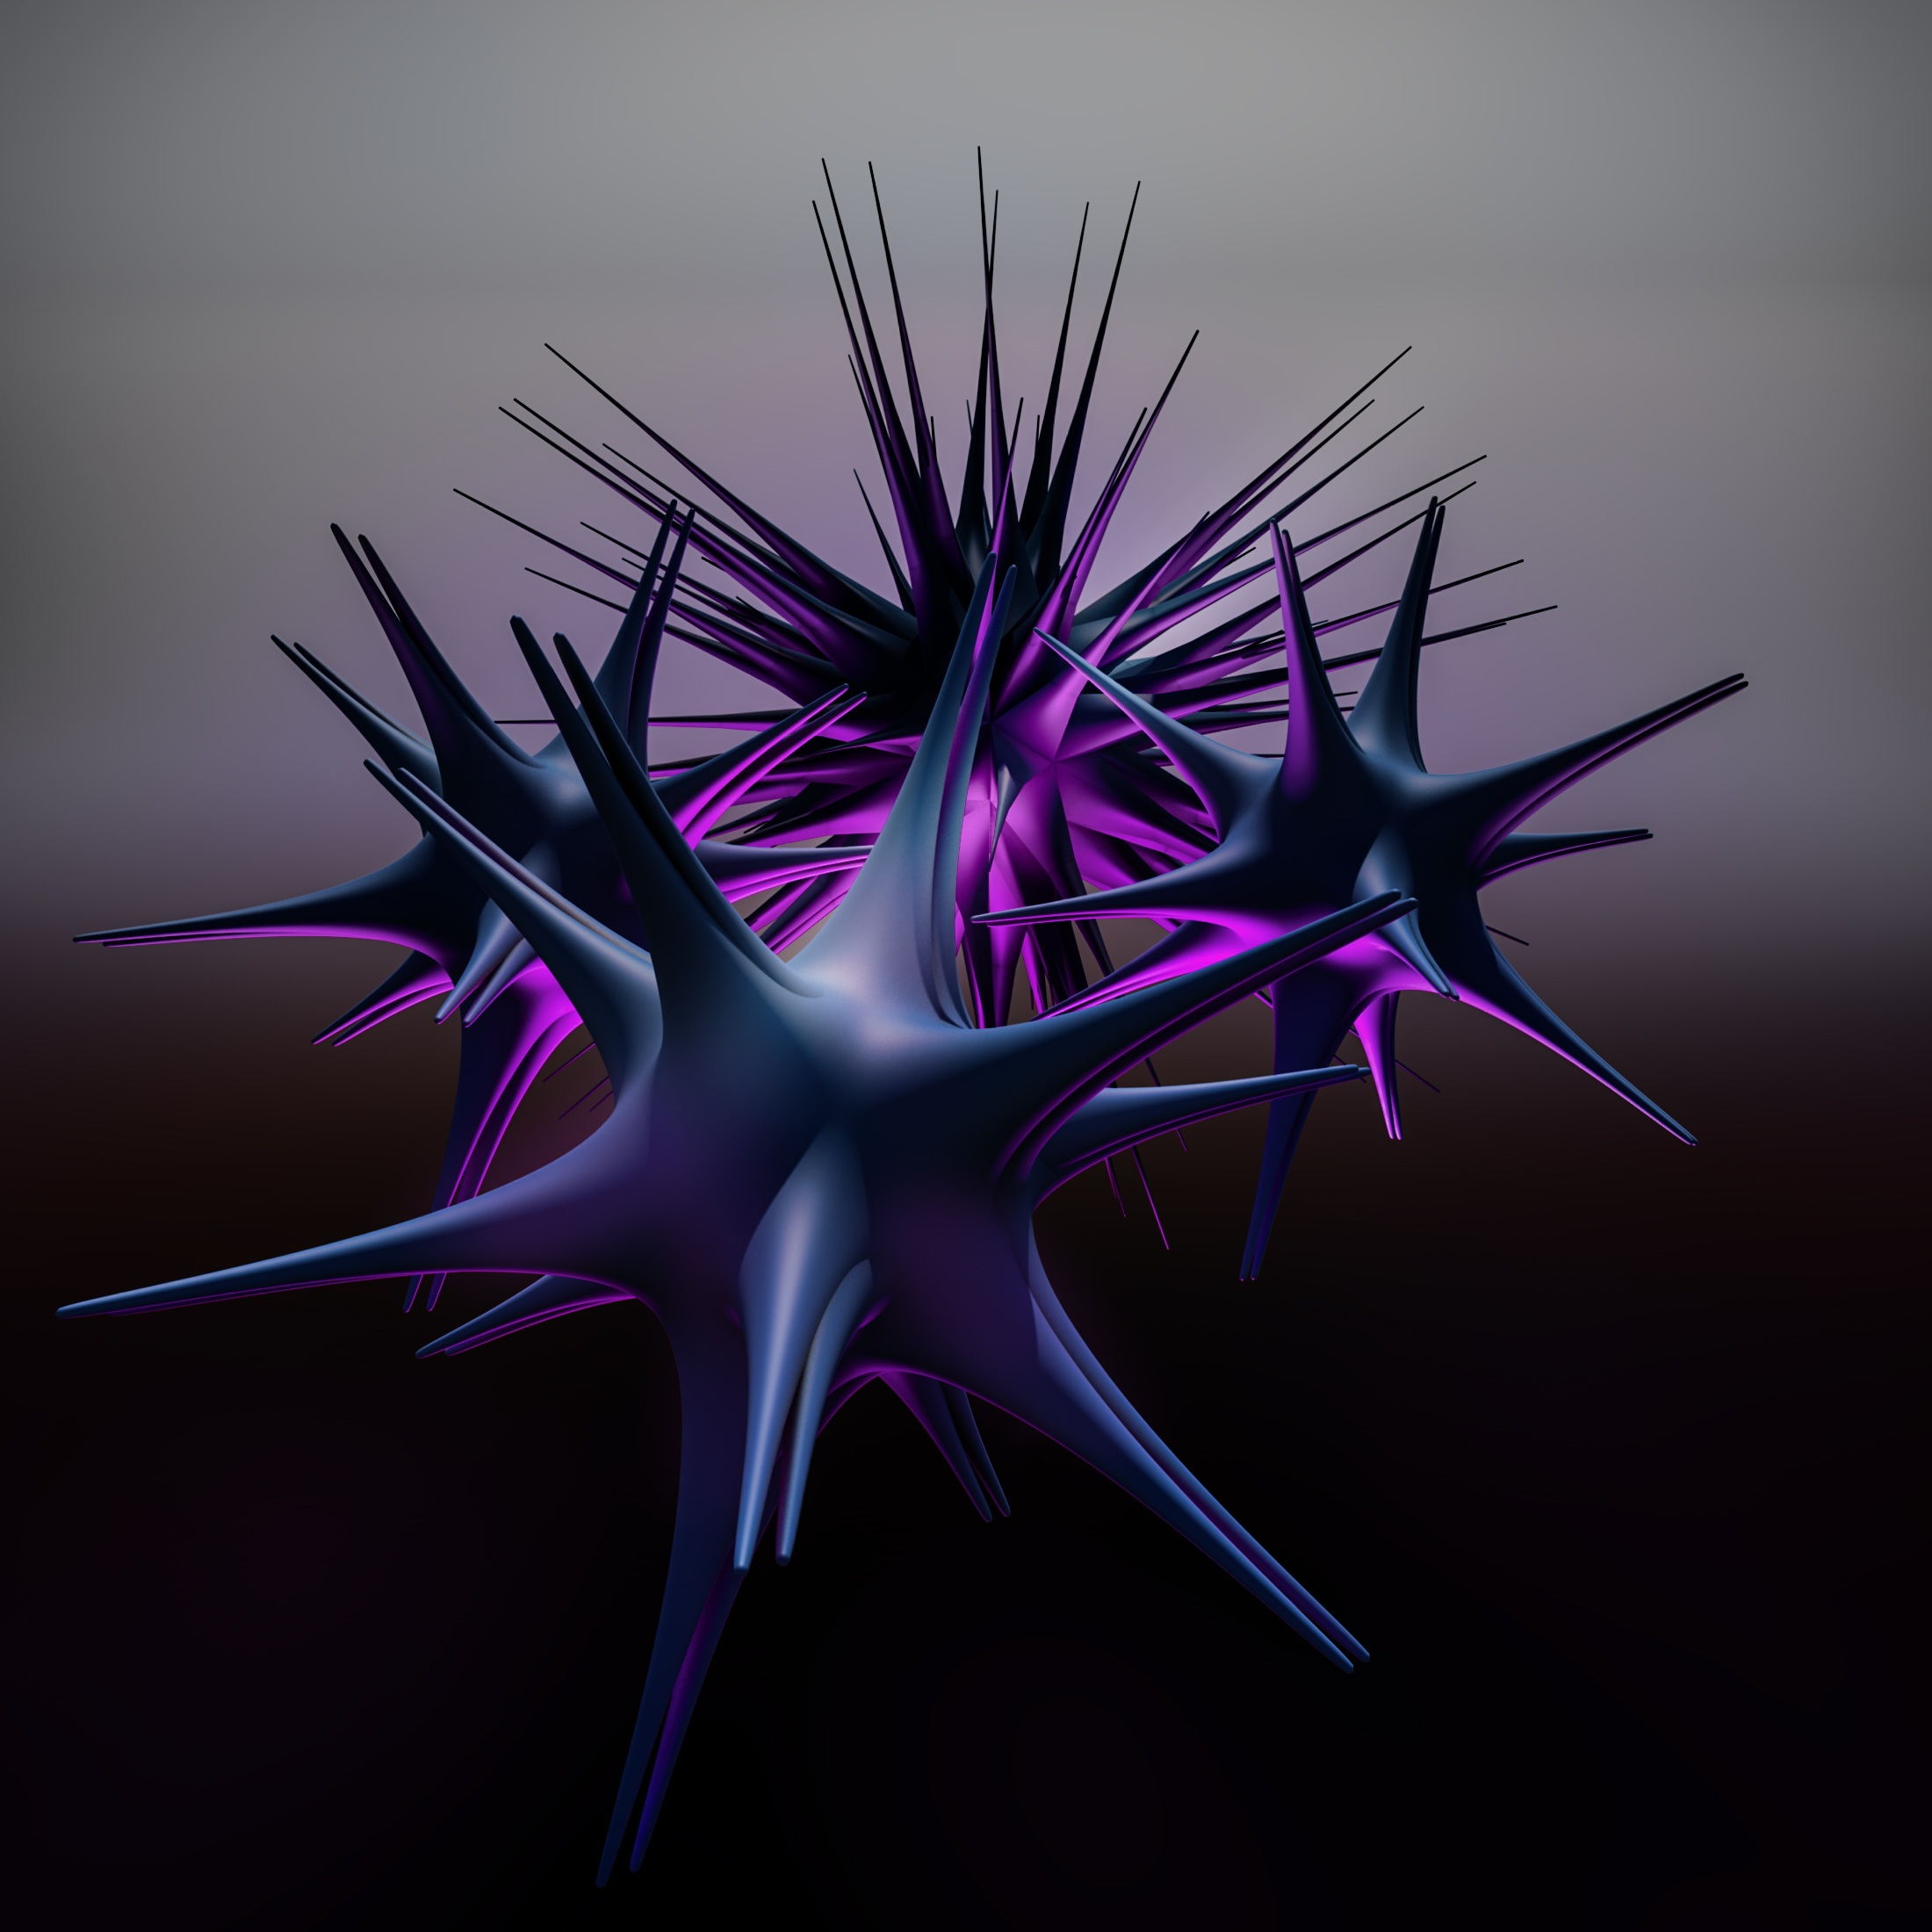 120749 download wallpaper Structure, 3D, Form, Barbed, Spiny, Acute, Sharp screensavers and pictures for free